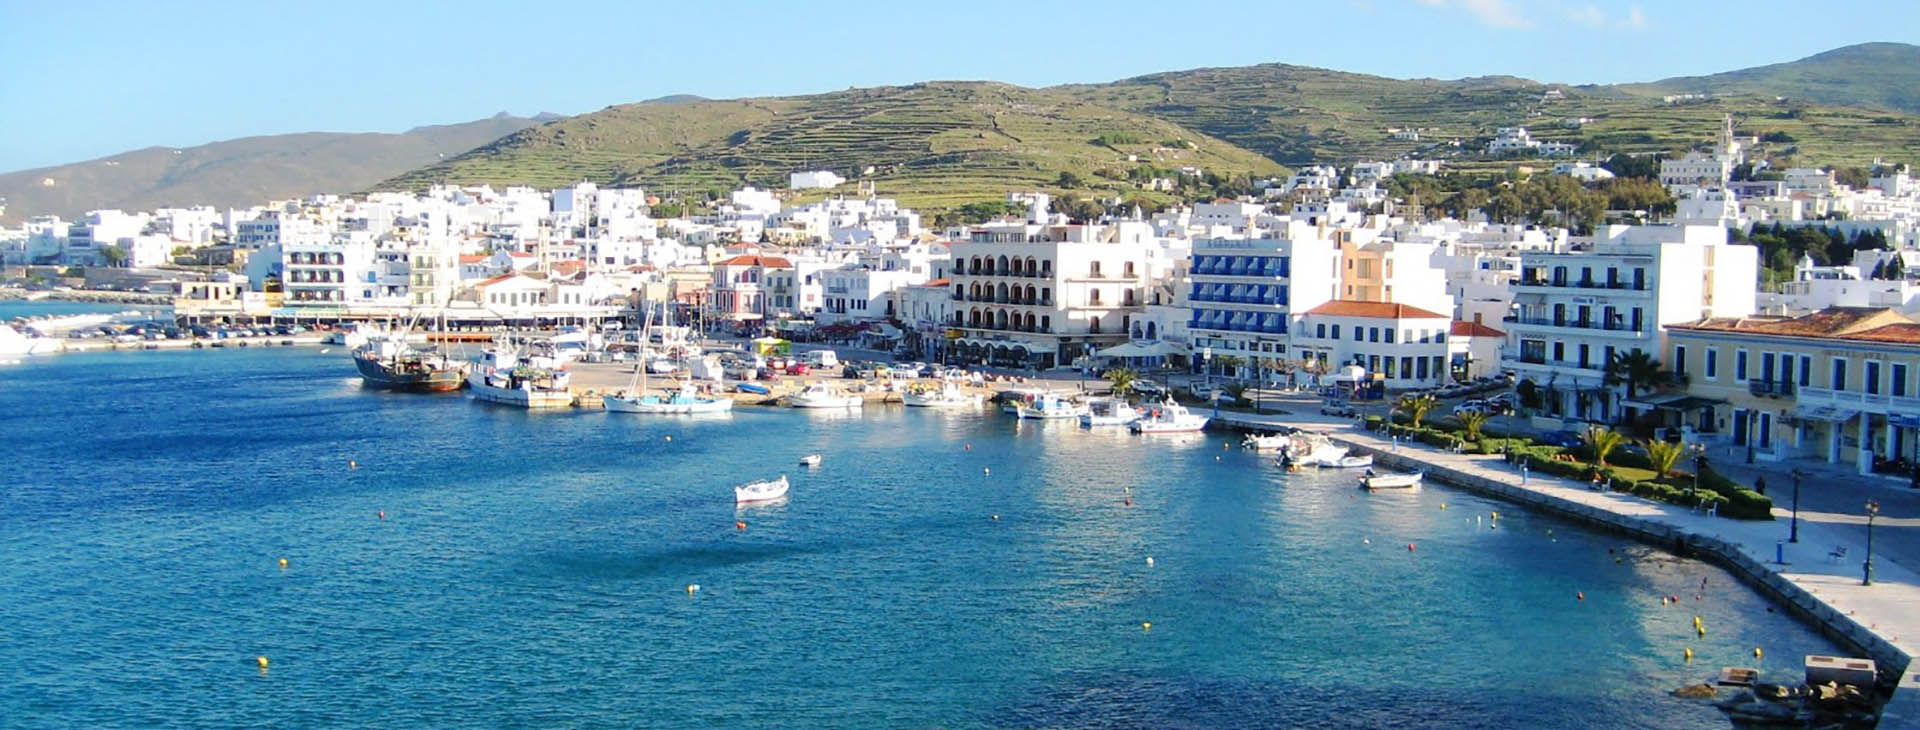 Harbour, Tinos town